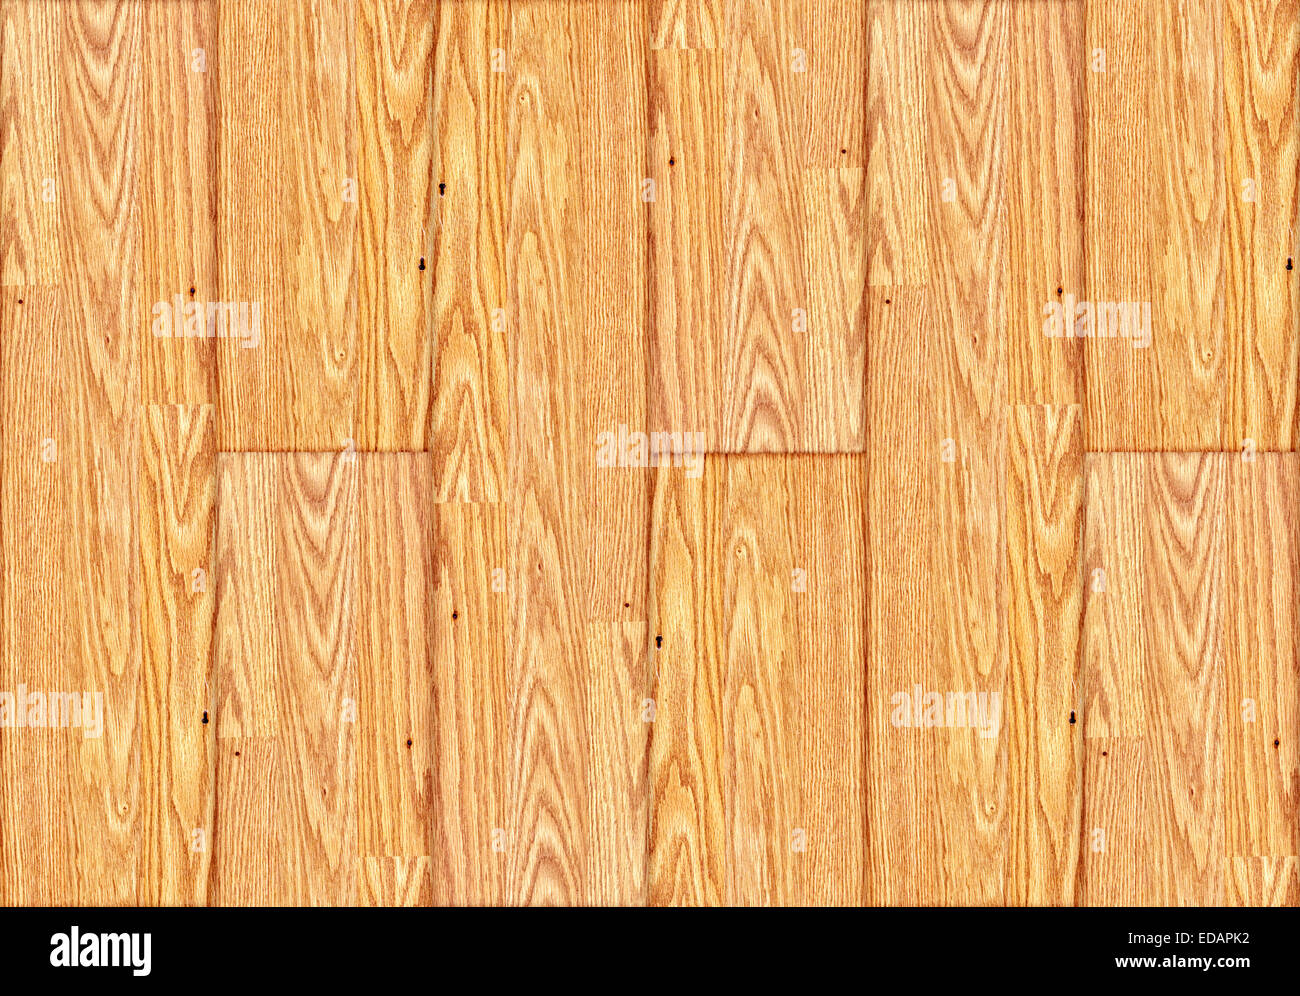 Laminate flooring stock photos